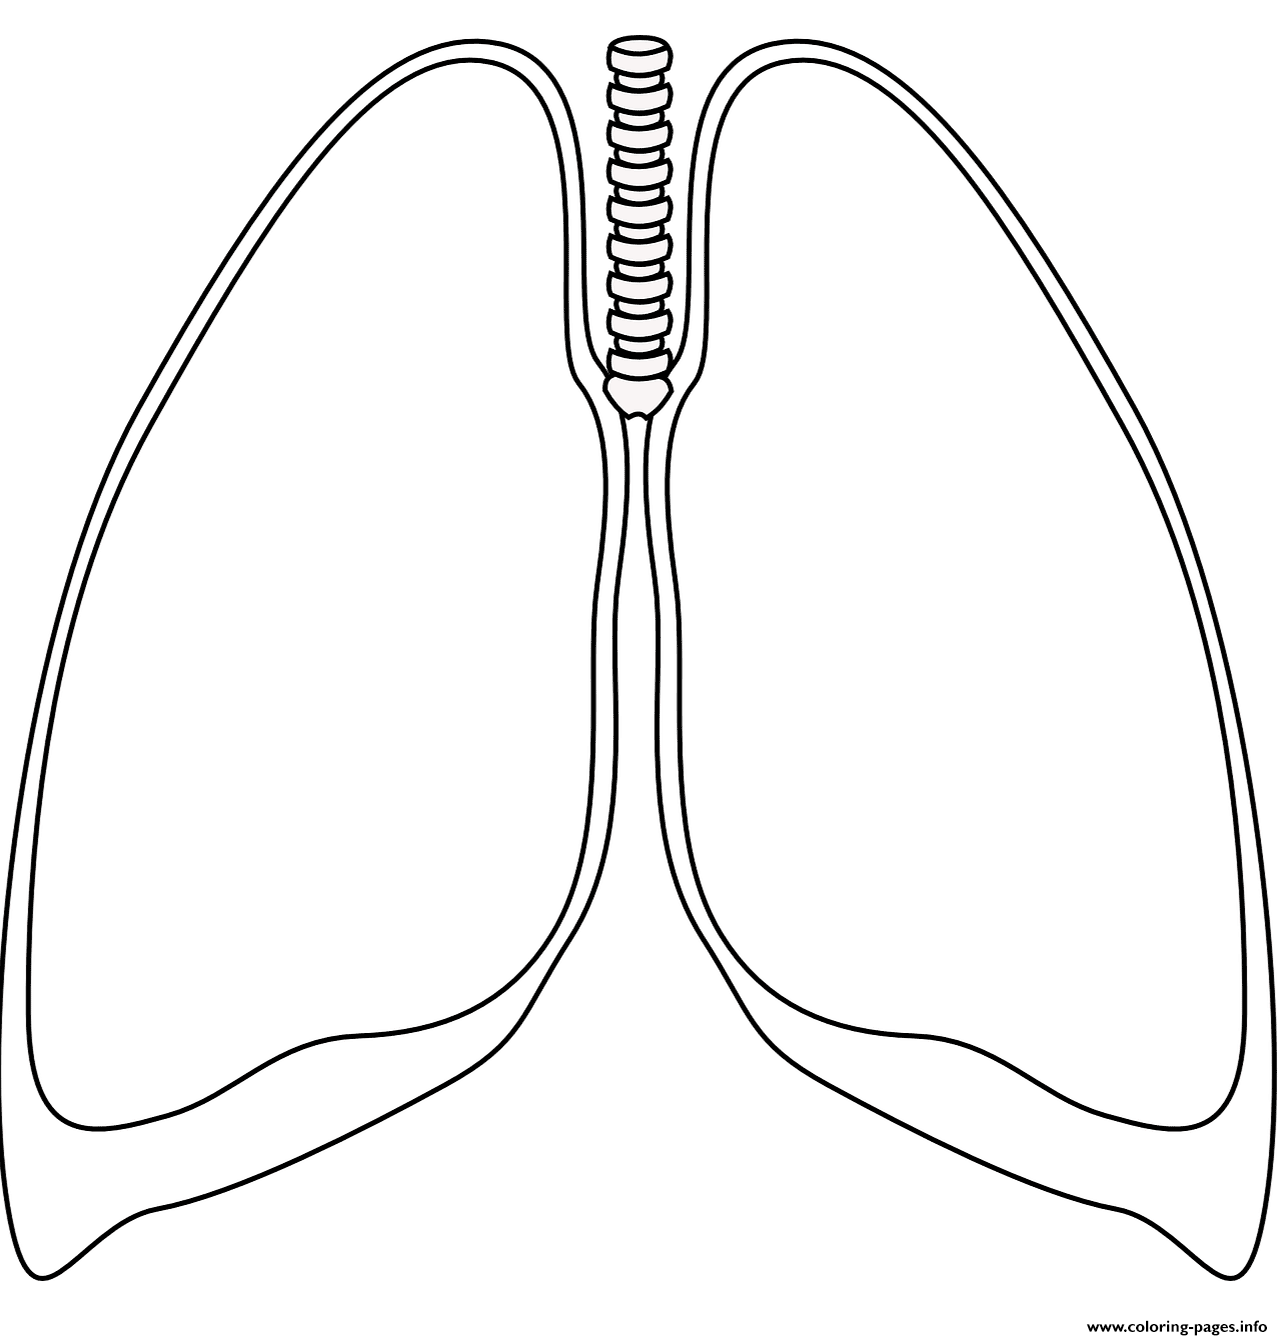 human lungs coloring pages lungs coloring page free printable coloring pages coloring lungs pages human